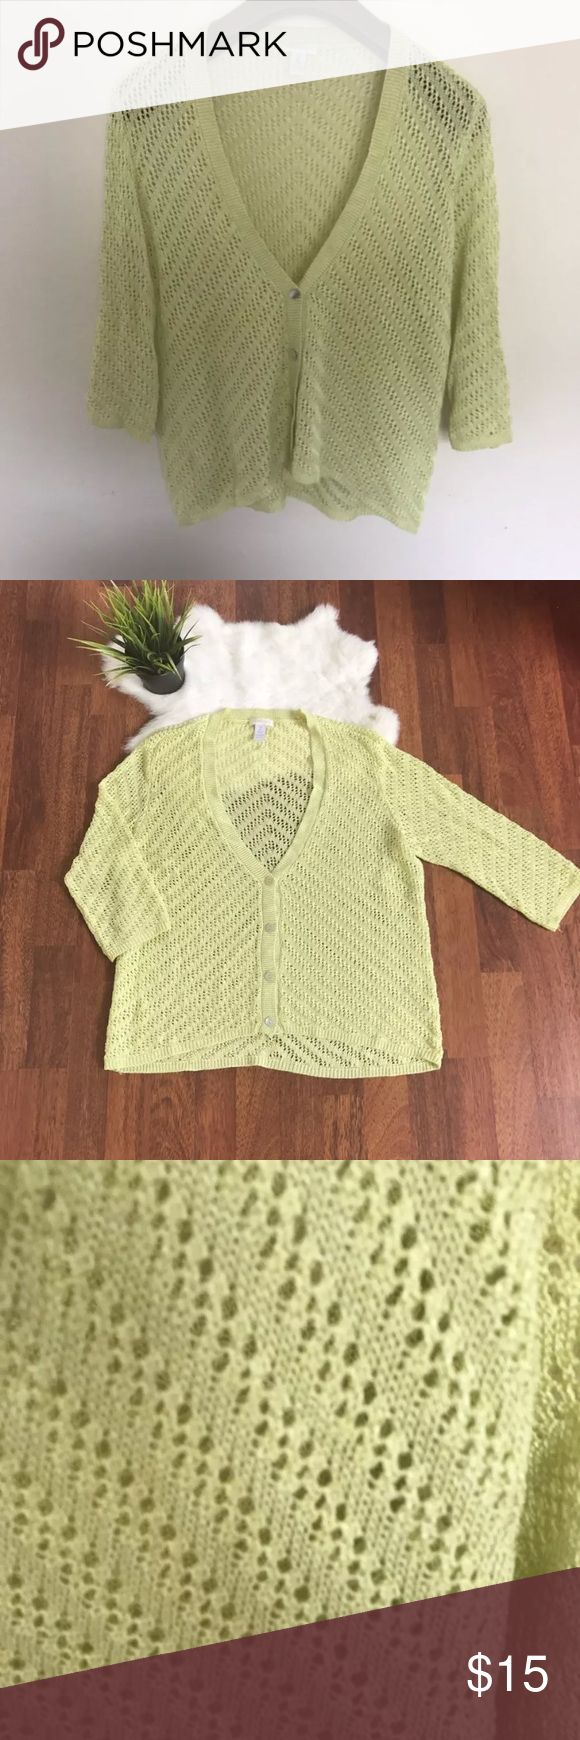 "Chico's Woman Sz 2 Cardigan Green Crochet Chico's Woman Sz 2 Cardigan Green Crochet 3/4 Sleeve V Neck Front Button  Type: Woman Top  Style: Woman Cardigan Crochet  Brand: Chico's  Material: Rayon, Polyester  Color: Green  Measurements Armpit to armpit: 20"", Length: 23""  Condition: Pre-owned, good condition. See pictures for more details. Pet and smoke free. Chico's Sweaters Cardigans"